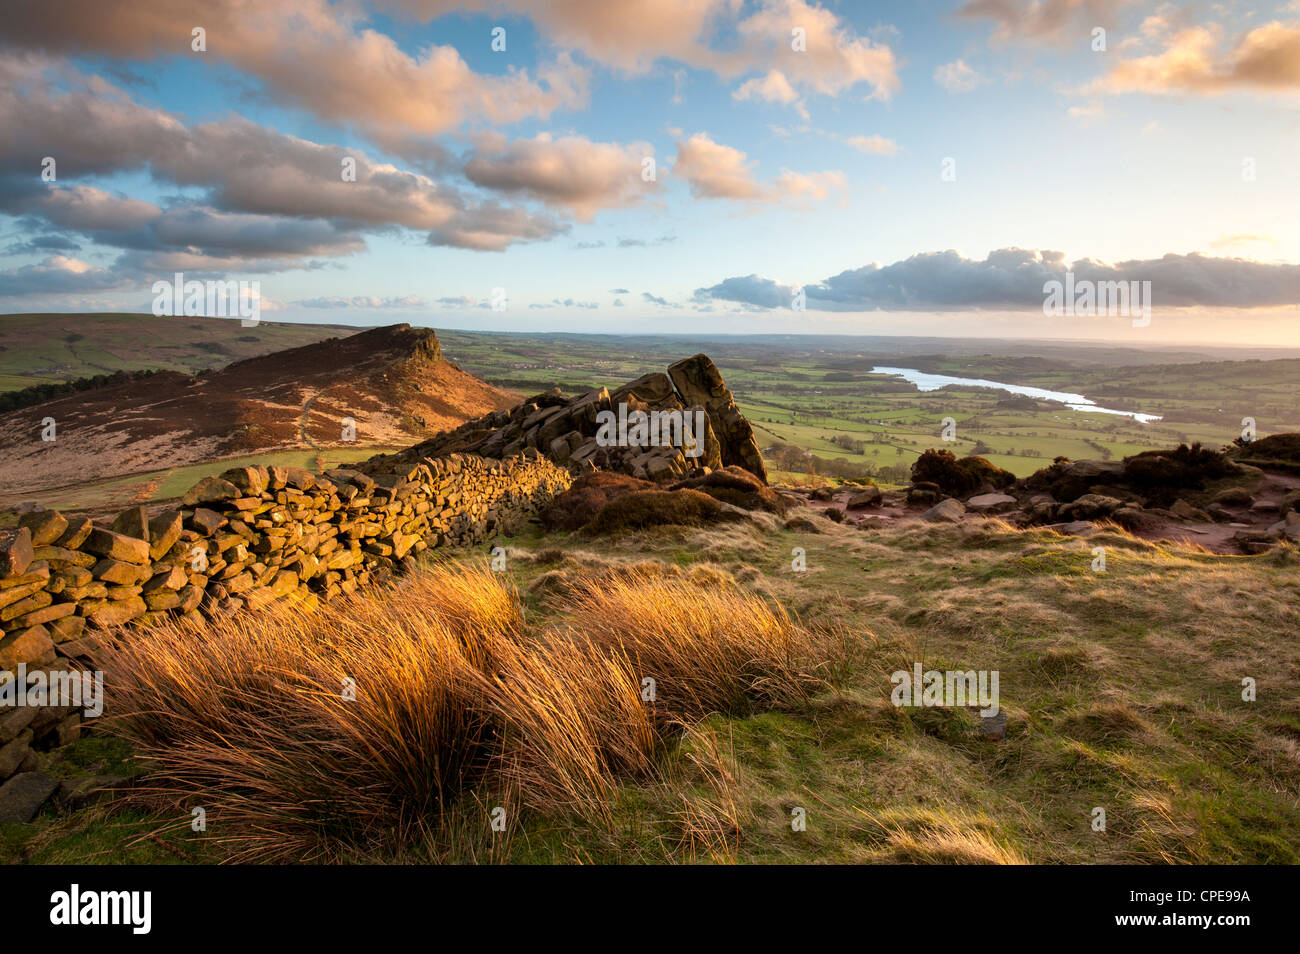 Sunset at The Roaches including Tittesworth Reservoir, Staffordshire Moorlands, Peak District National Park, England, - Stock Image